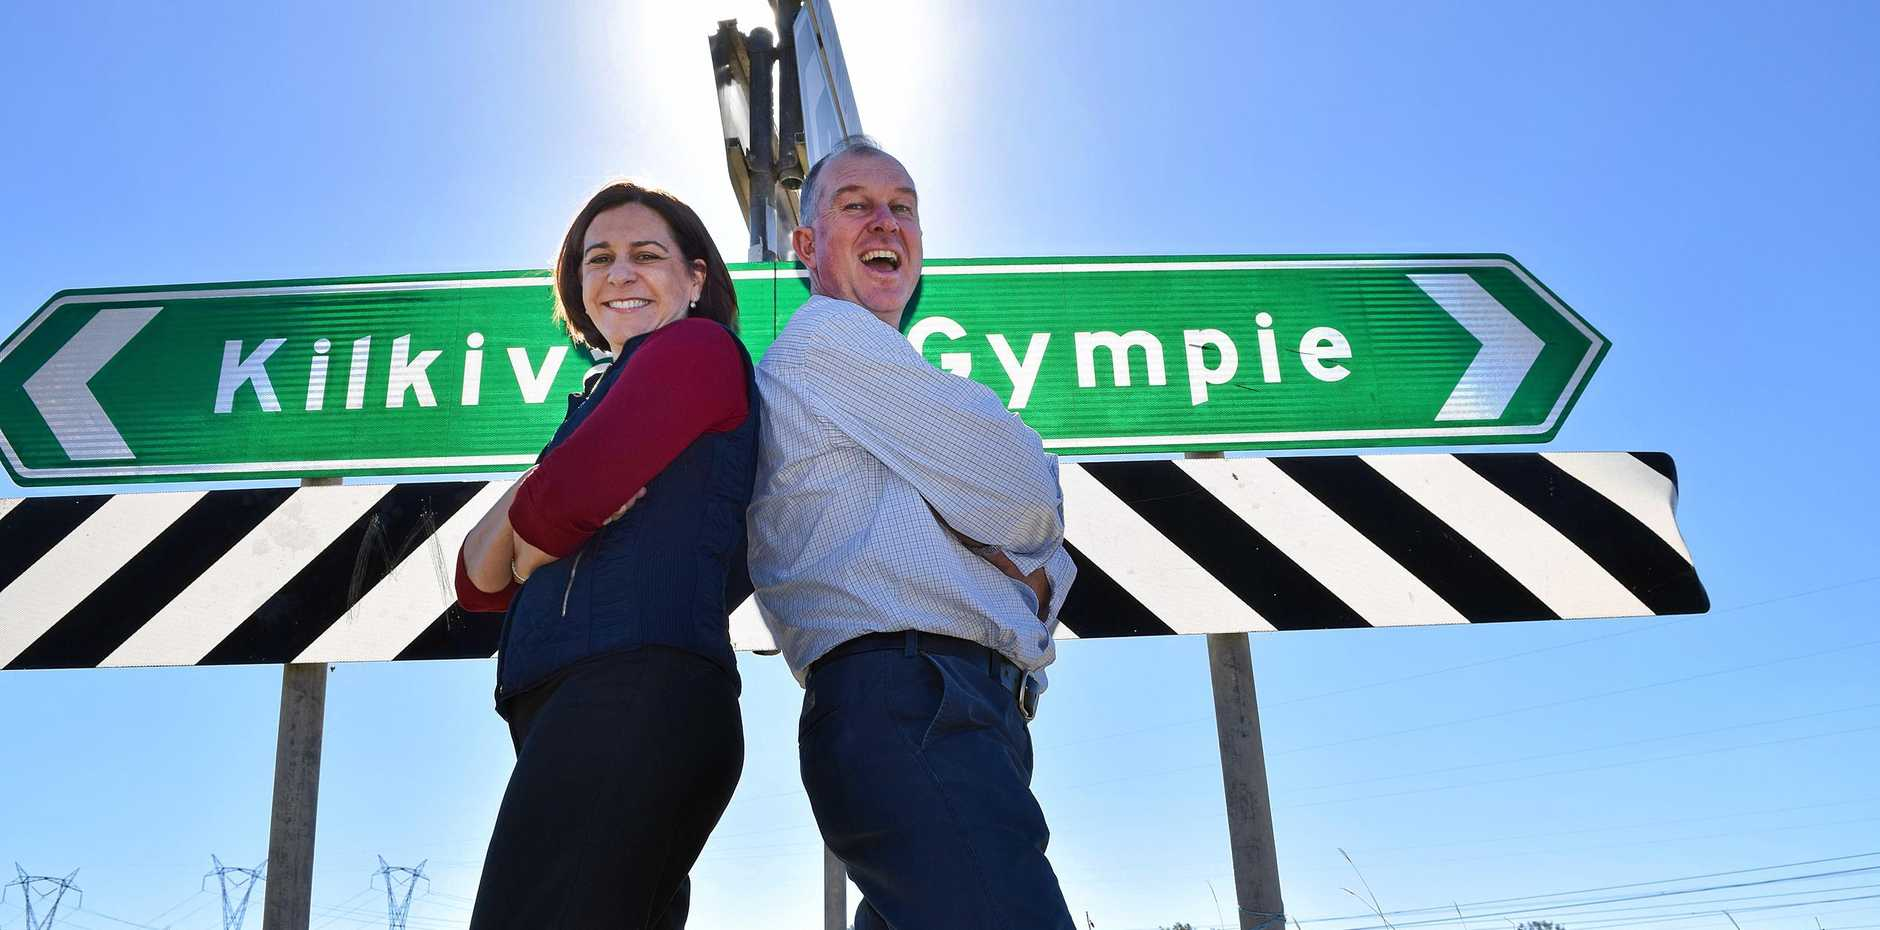 Opposition Leader Deb Frecklington with Gympie MP Tony Perrett at the point where their electorates meet. Mr Perrett is accused of going